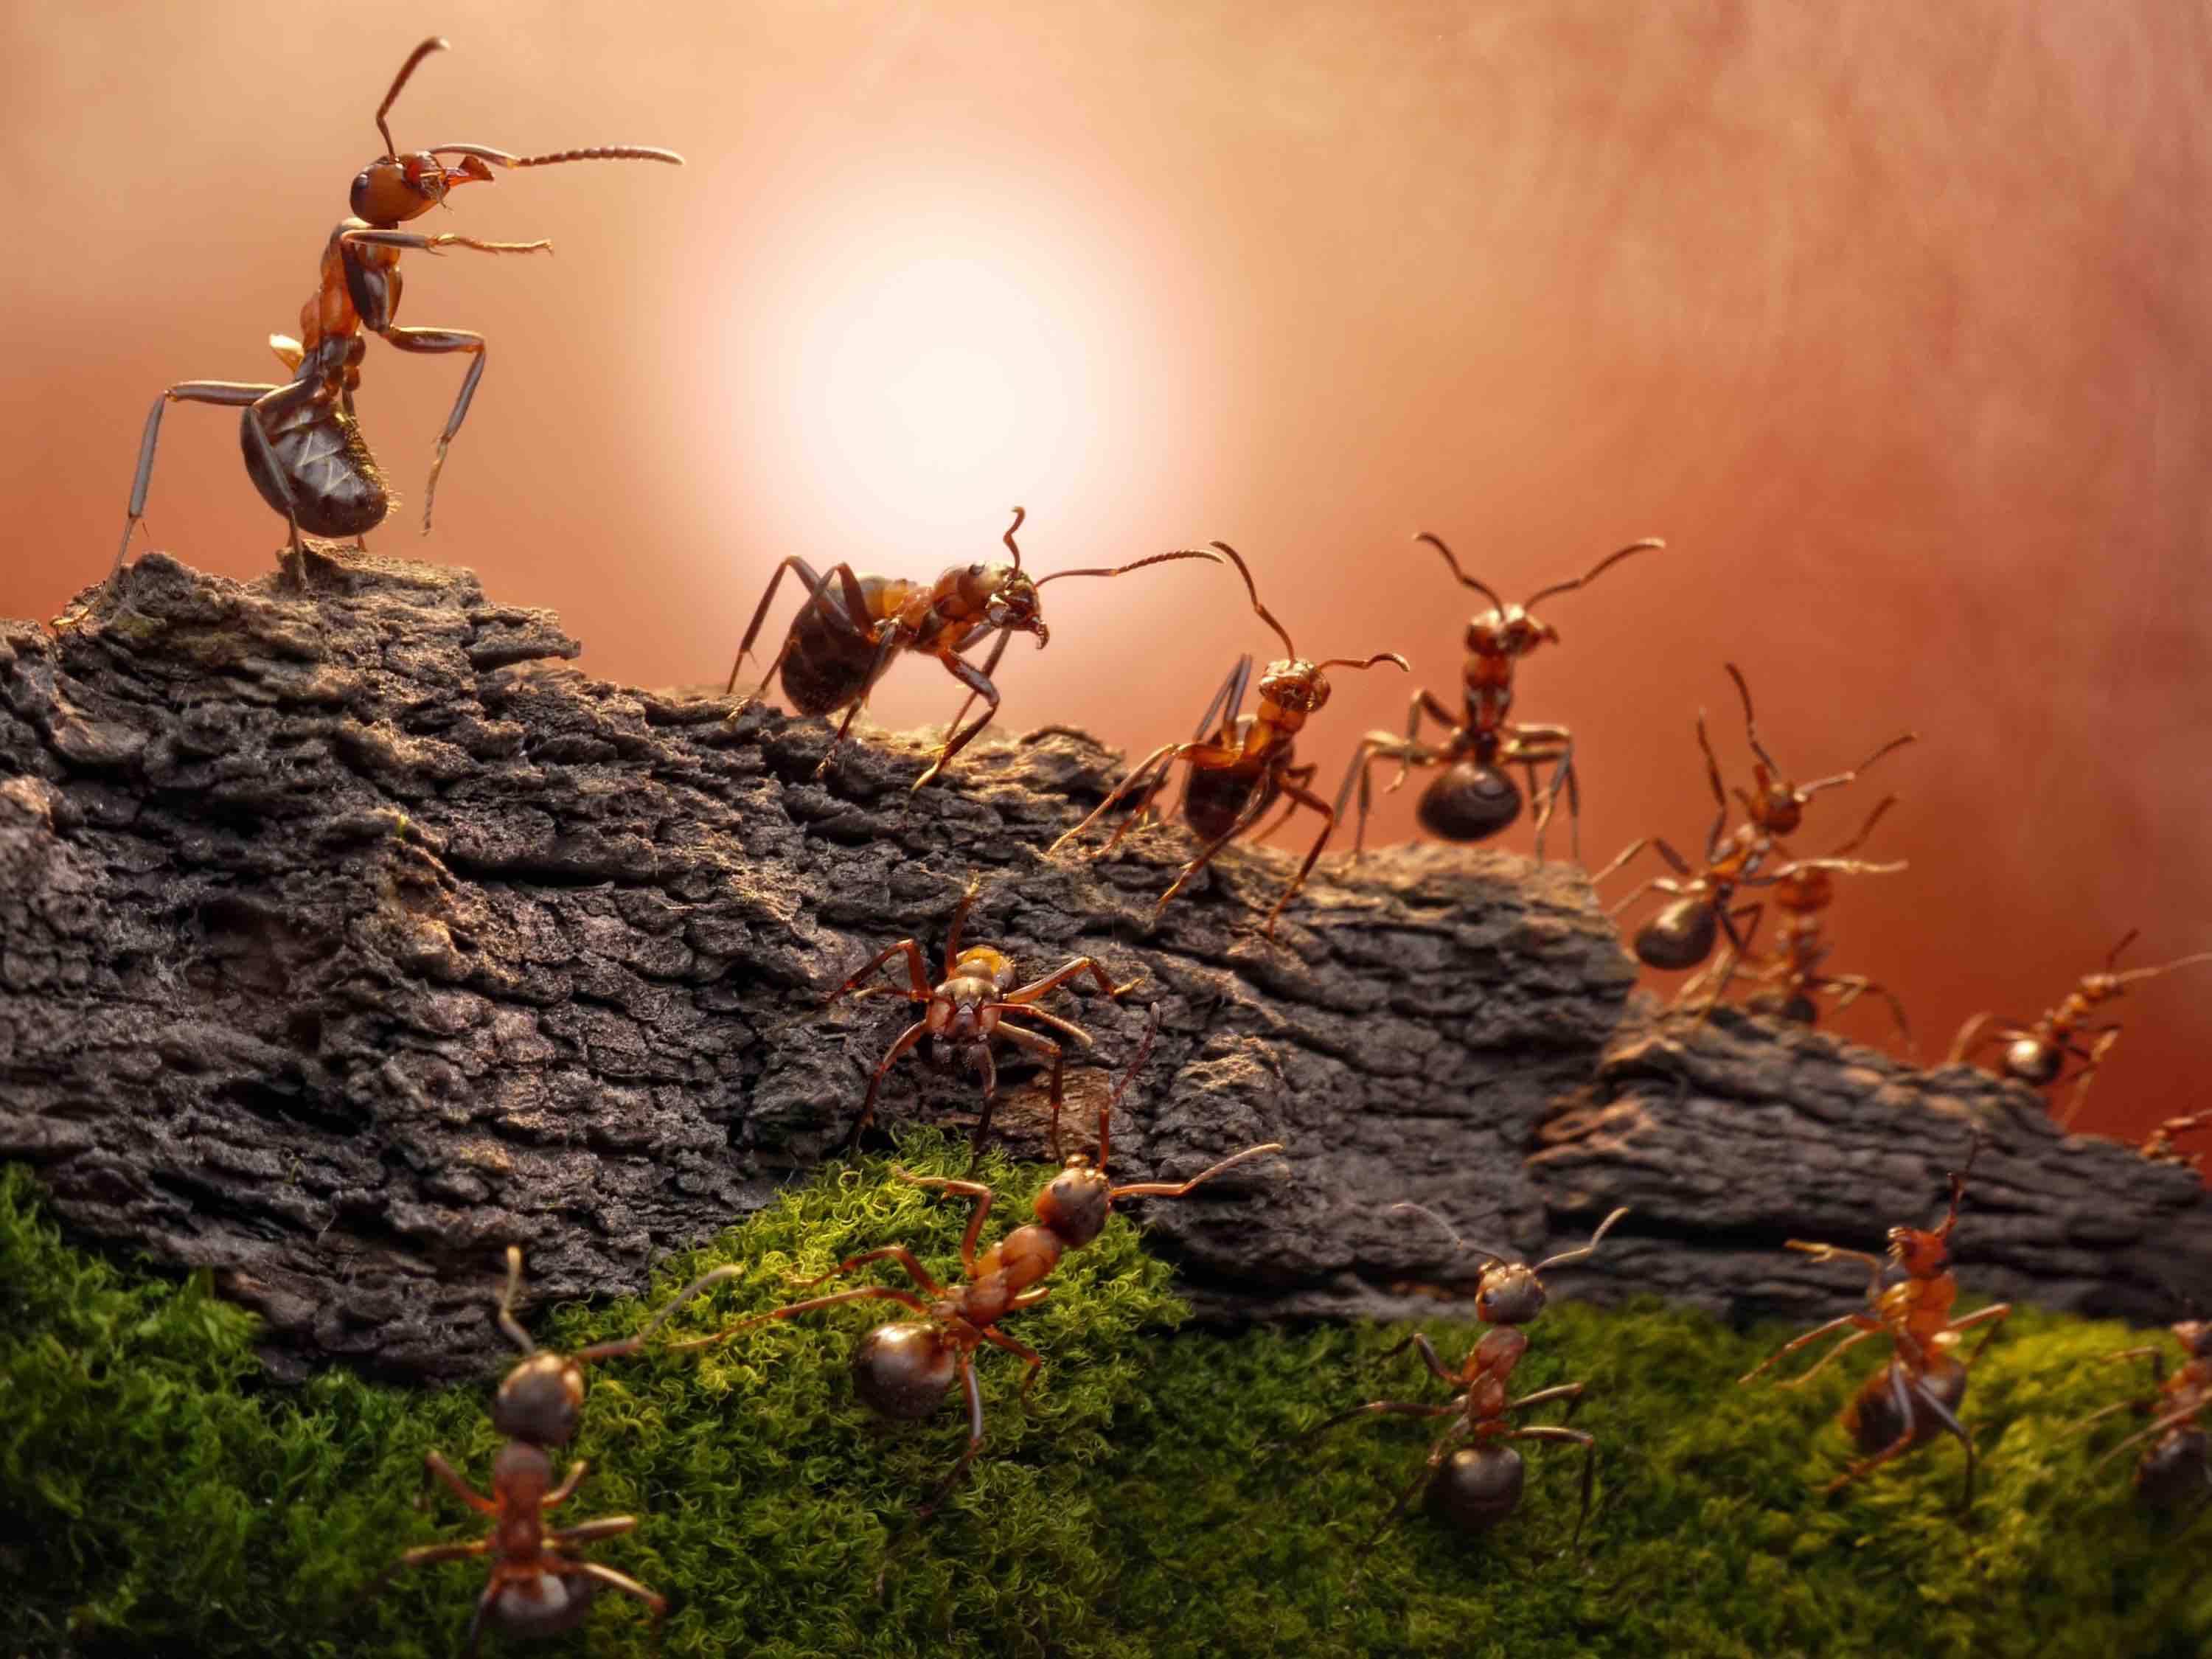 Ant DNA research suggests that the Americas may have been connected millions of years earlier than previously thought.